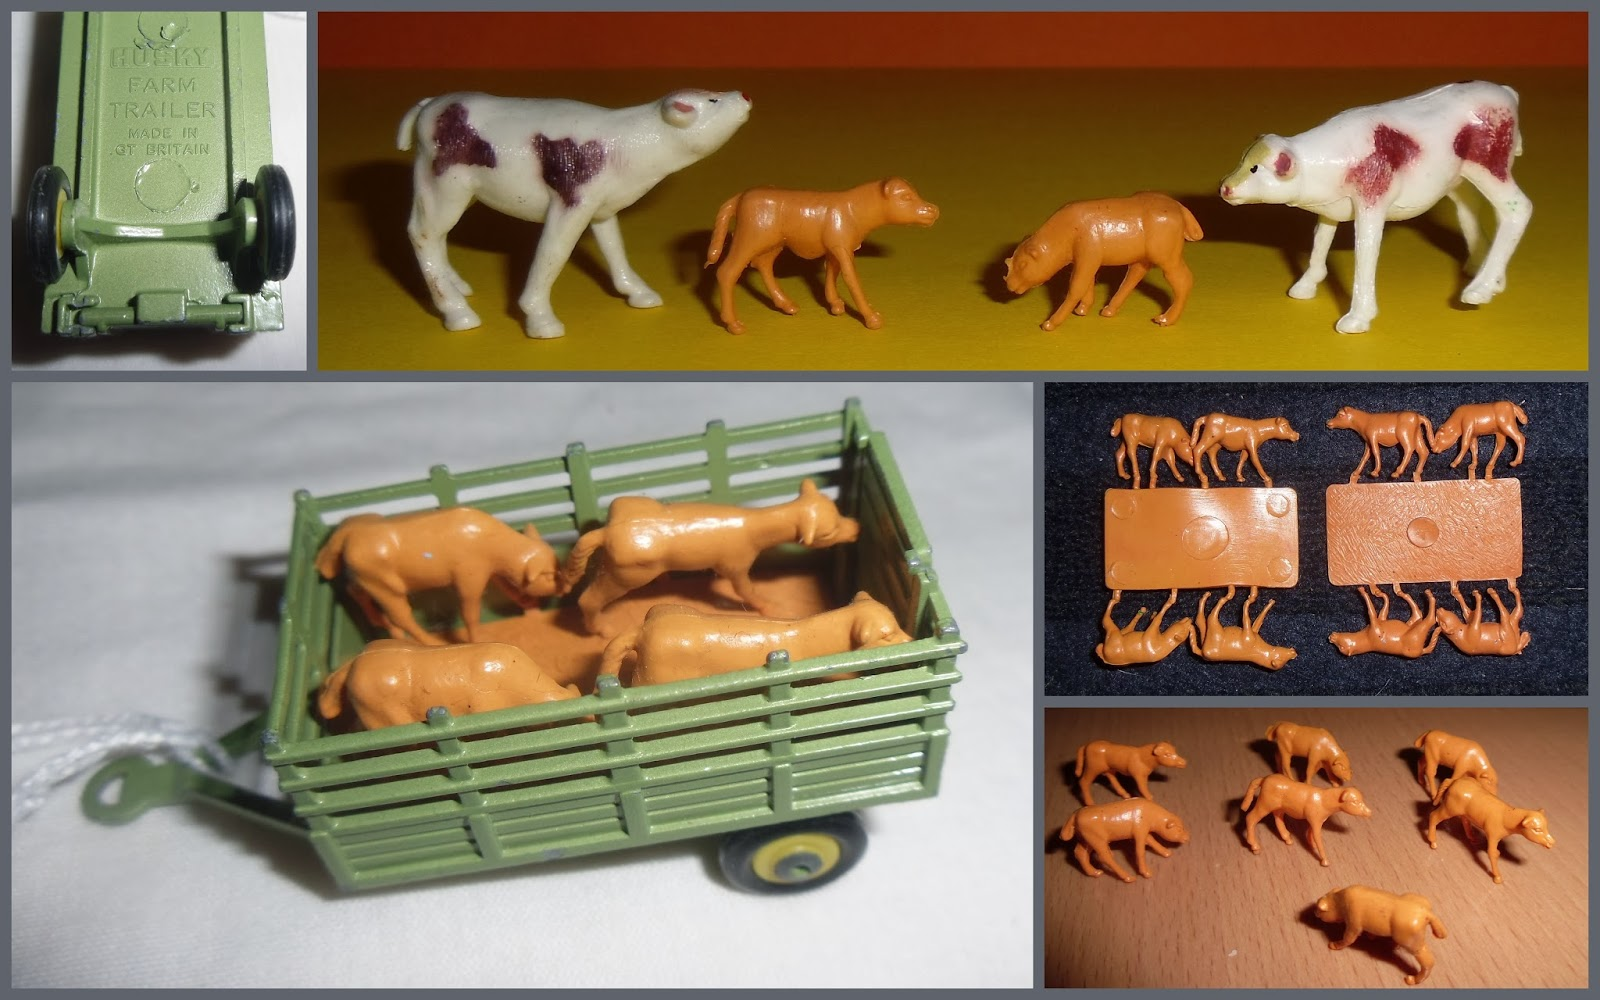 Action Figures Animals & Dinosaurs Smart Siku Toy Cows Vivid And Great In Style